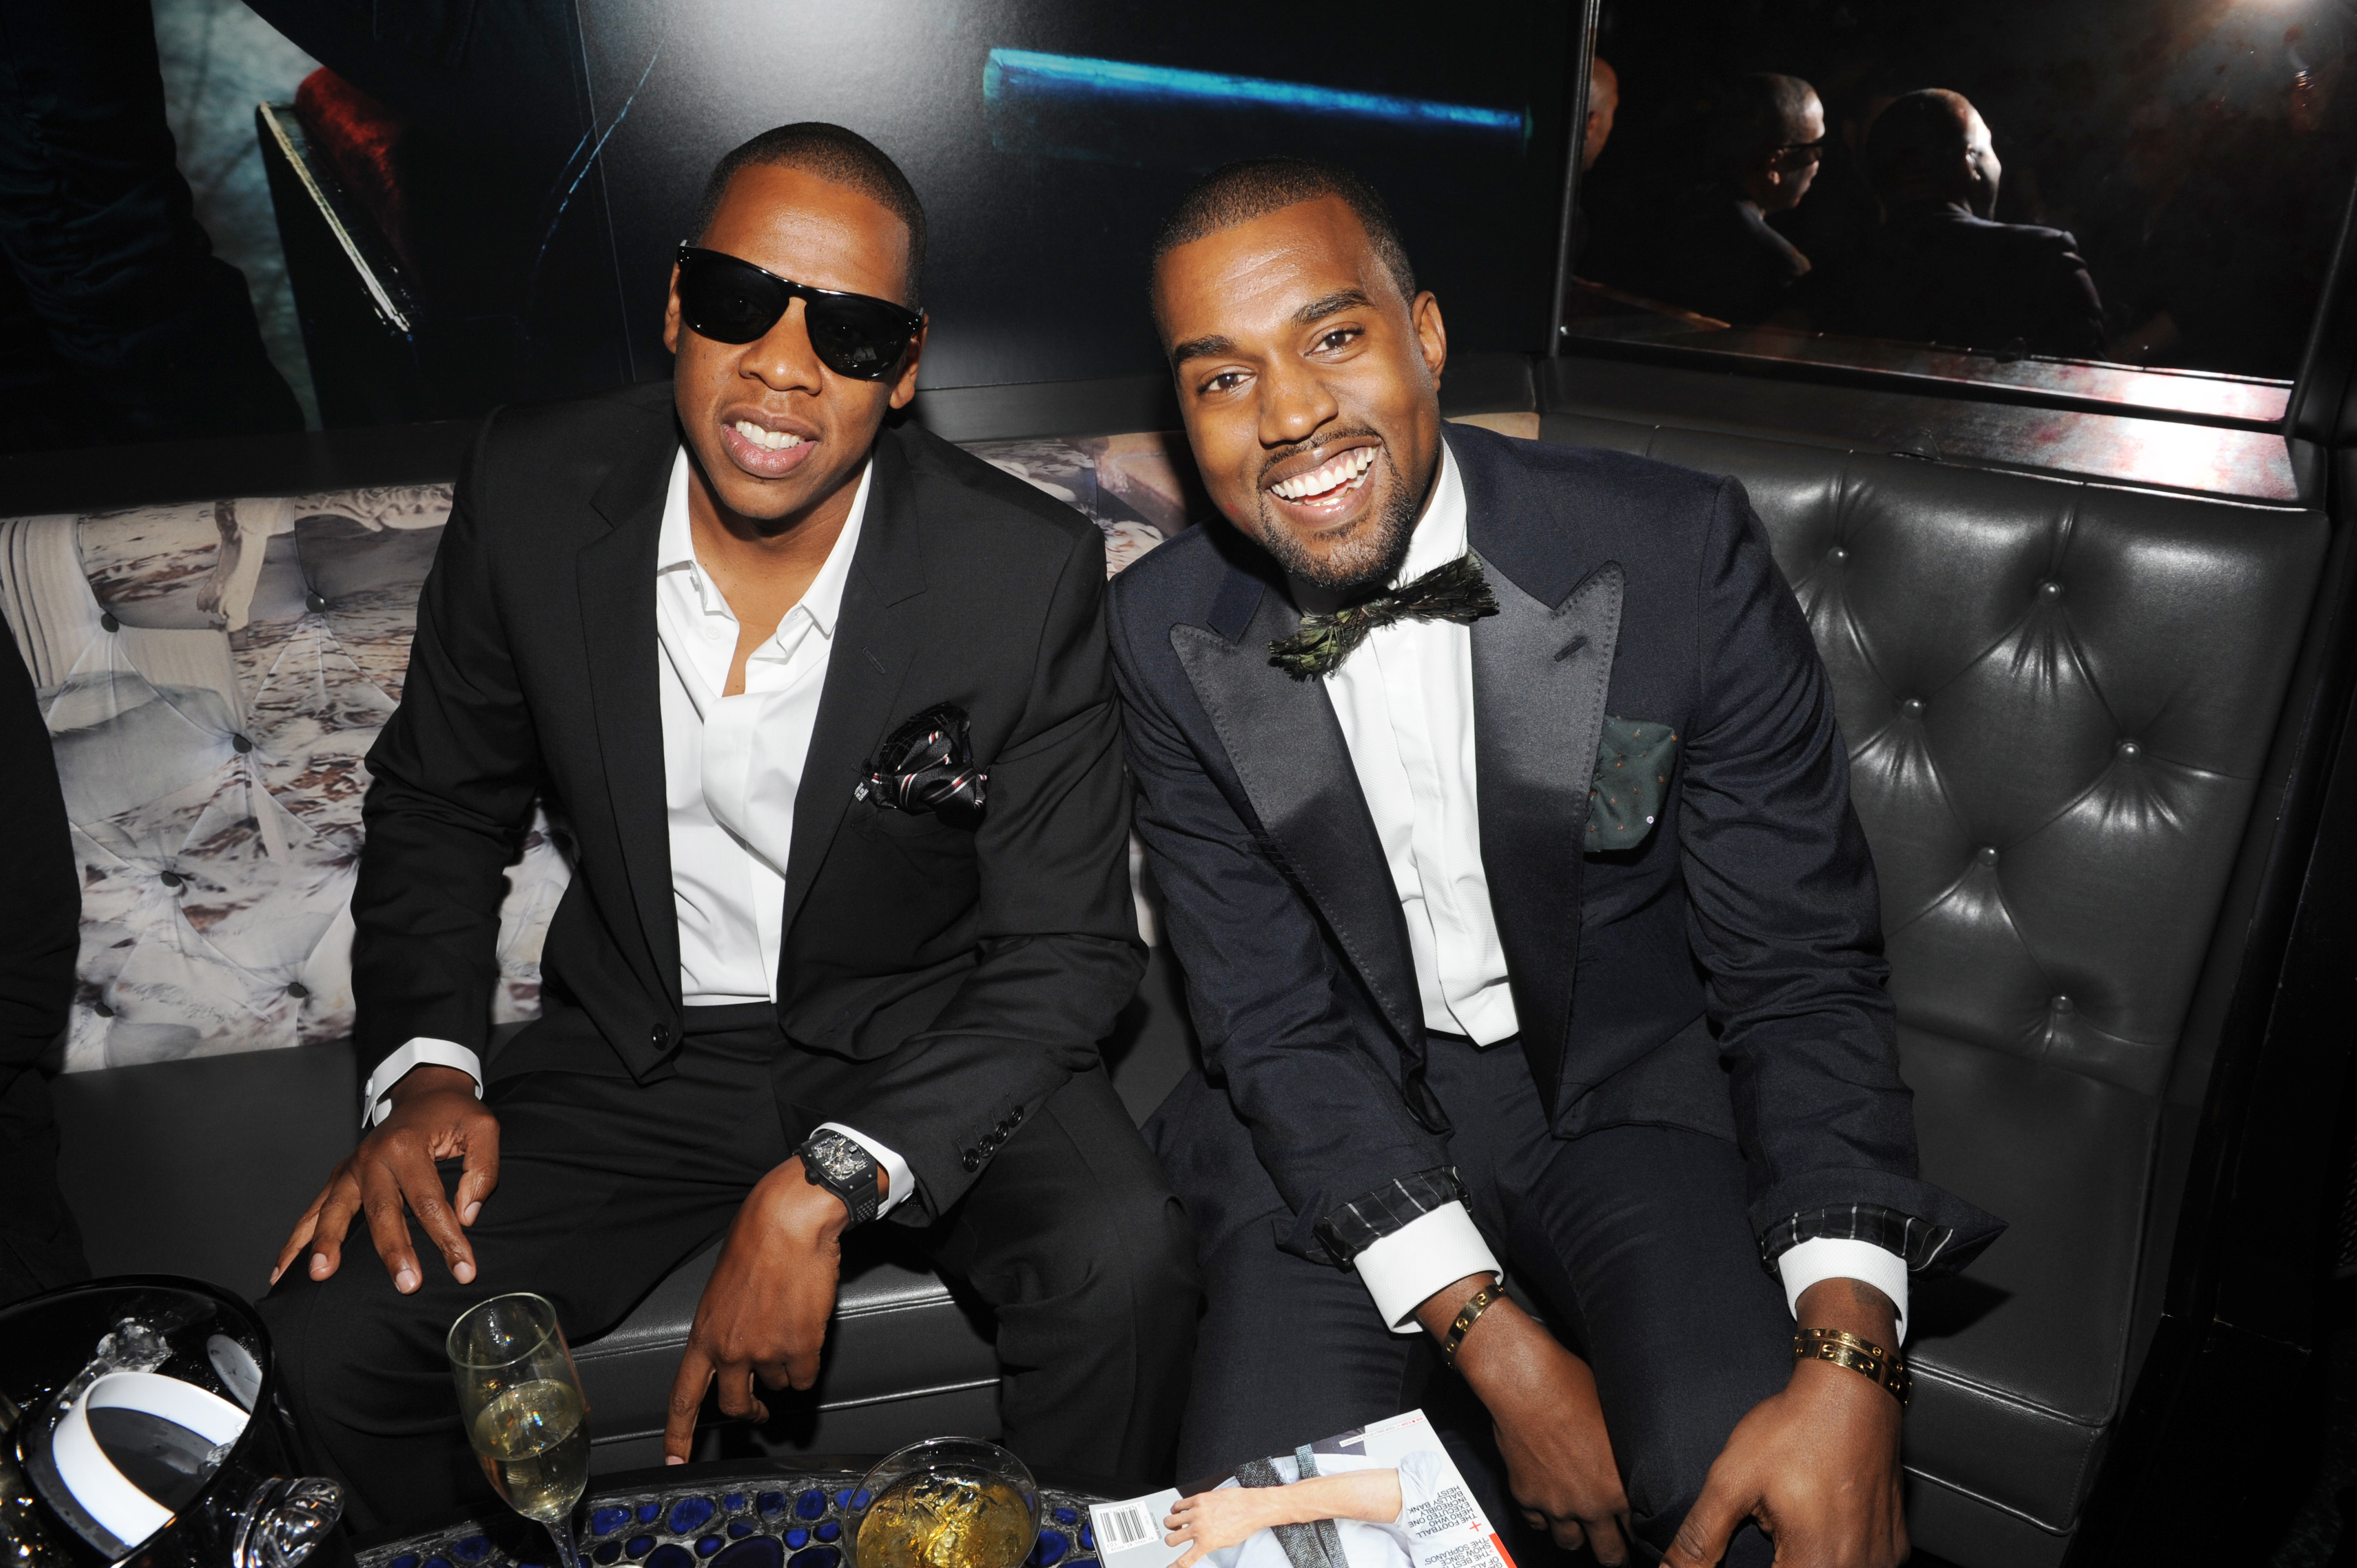 Jay Z, Kanye West attend the GQ & Rocawear NYC Fashion Week Party in New York City on Aug. 16, 2010.